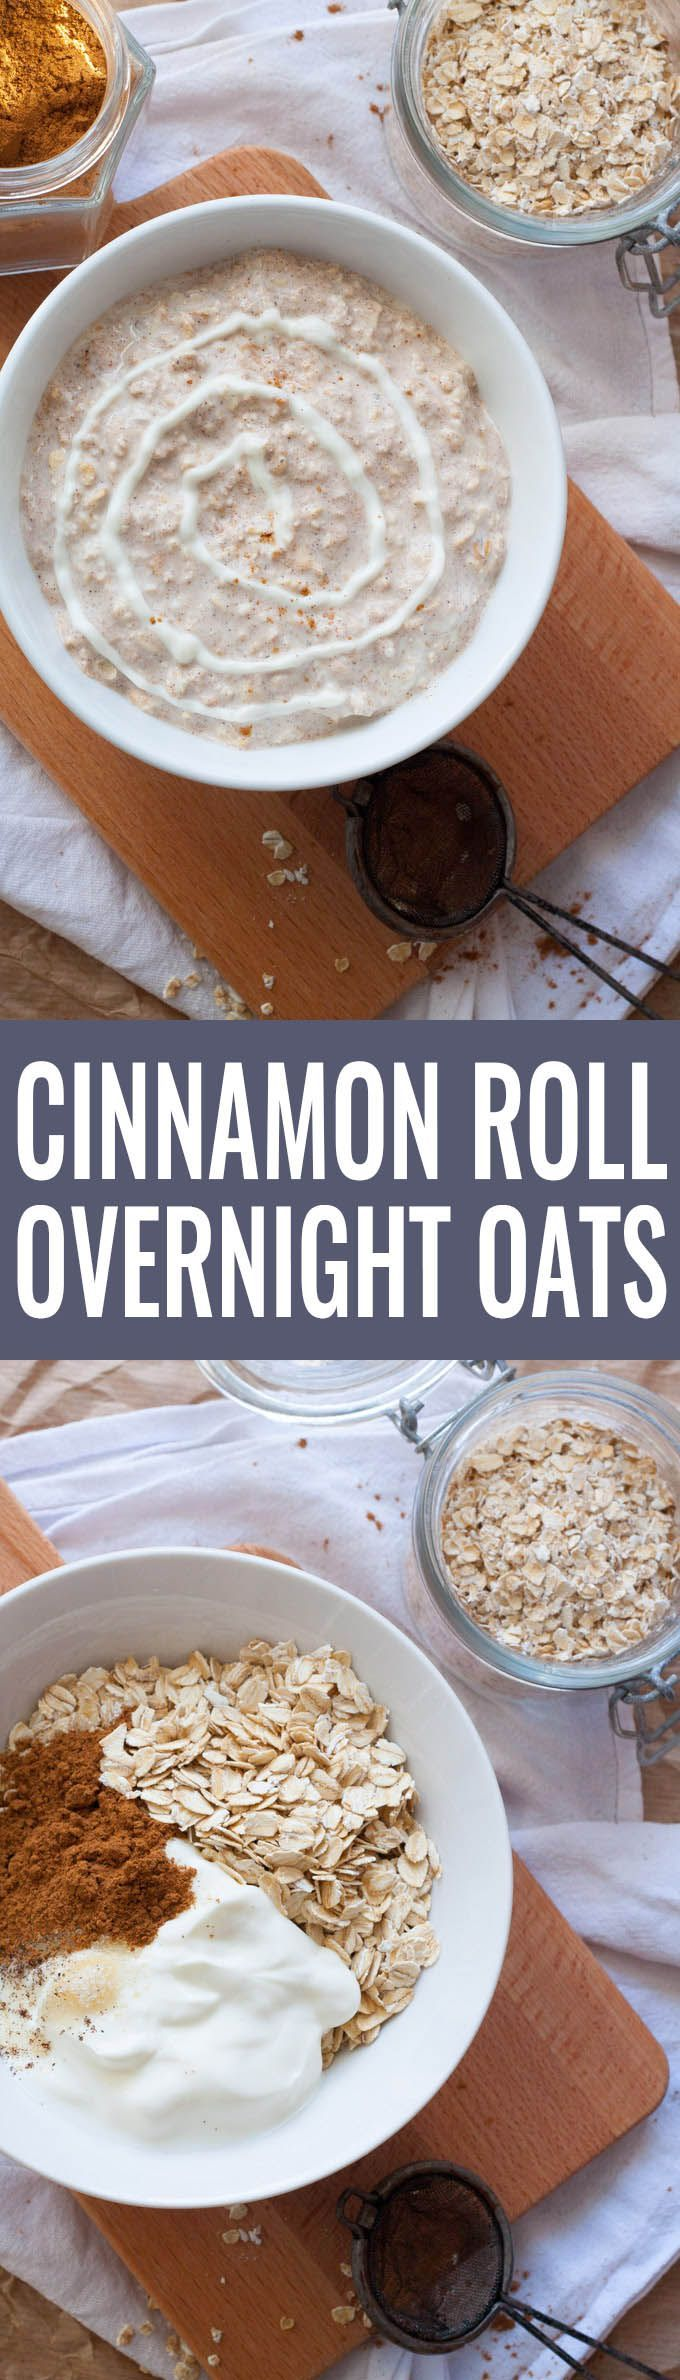 Cinnamon Roll Overnight Oats